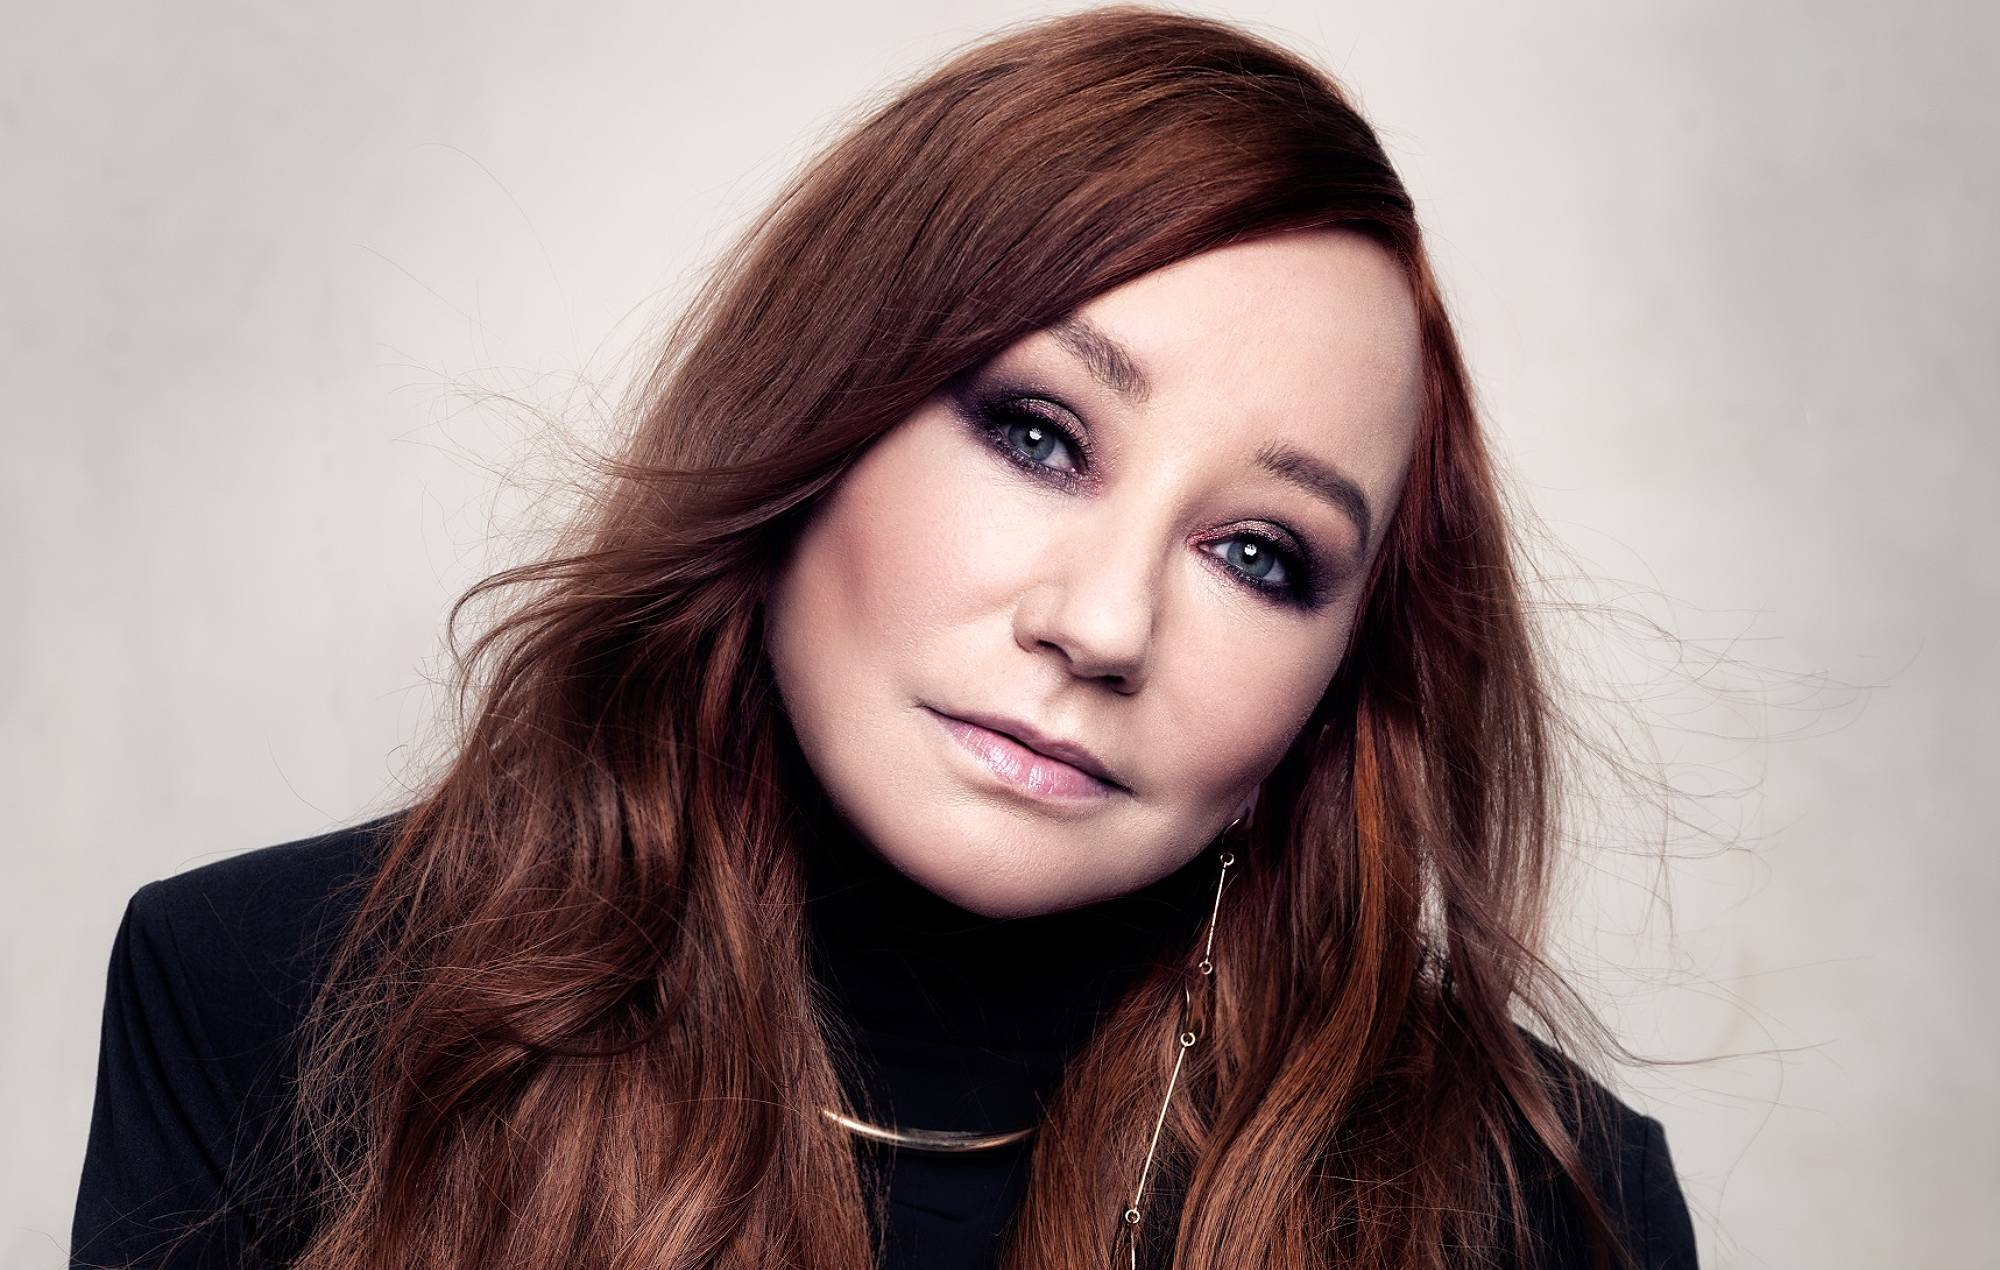 COSMO  Tori Amos previews new album with rollocking single 'Spies'